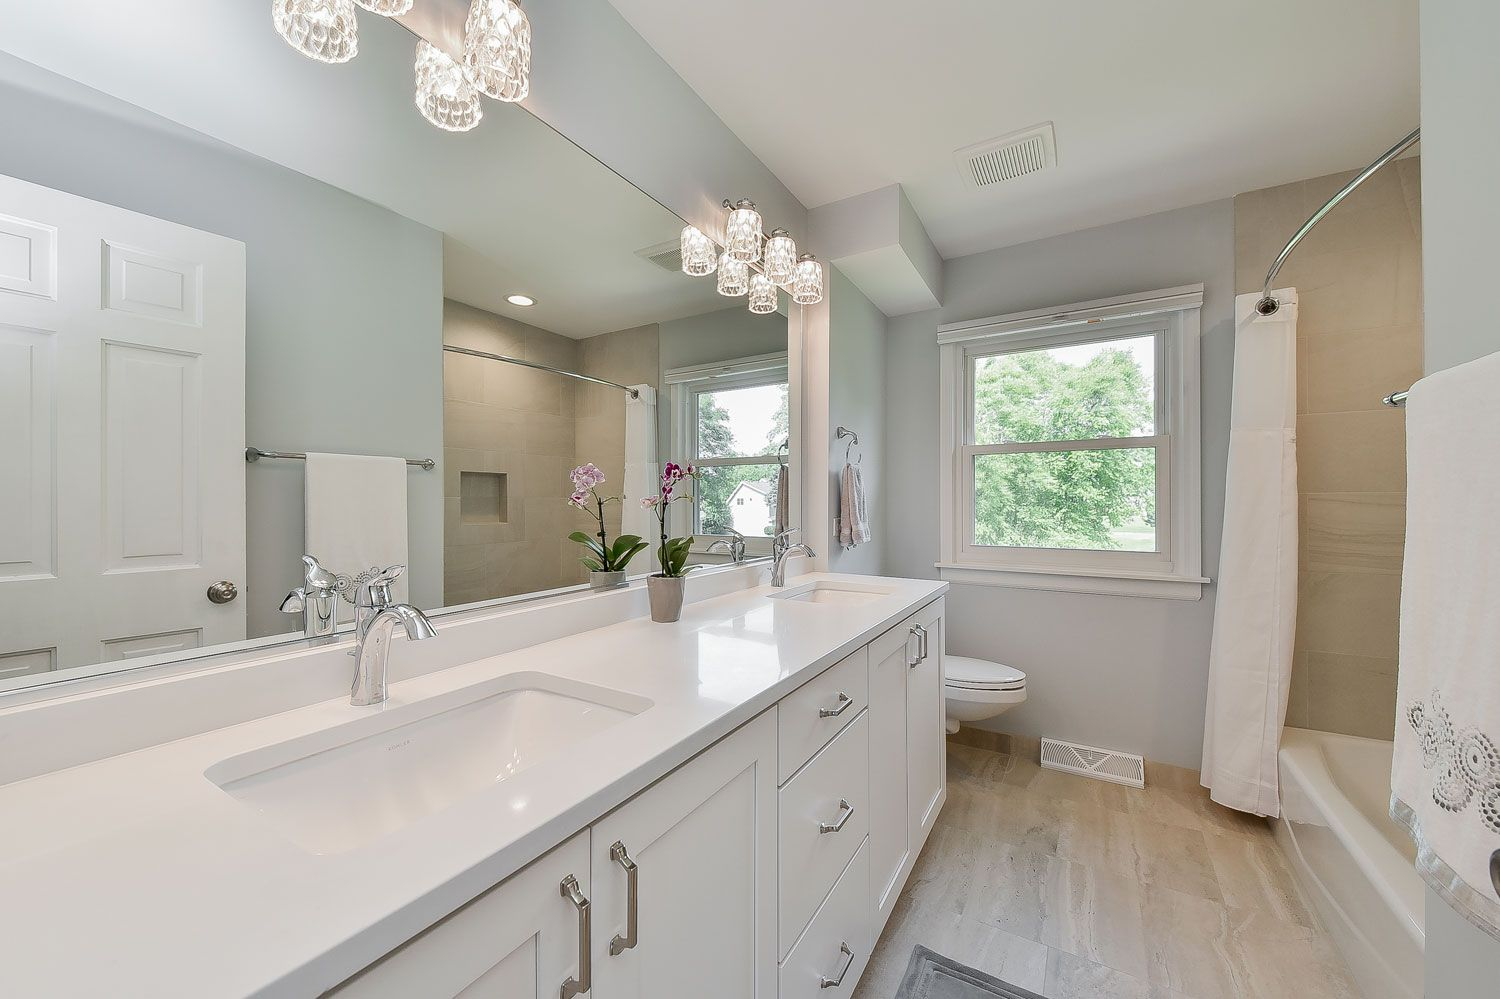 Brian Amp Karen S Hall Bathroom Remodel Pictures In 2019